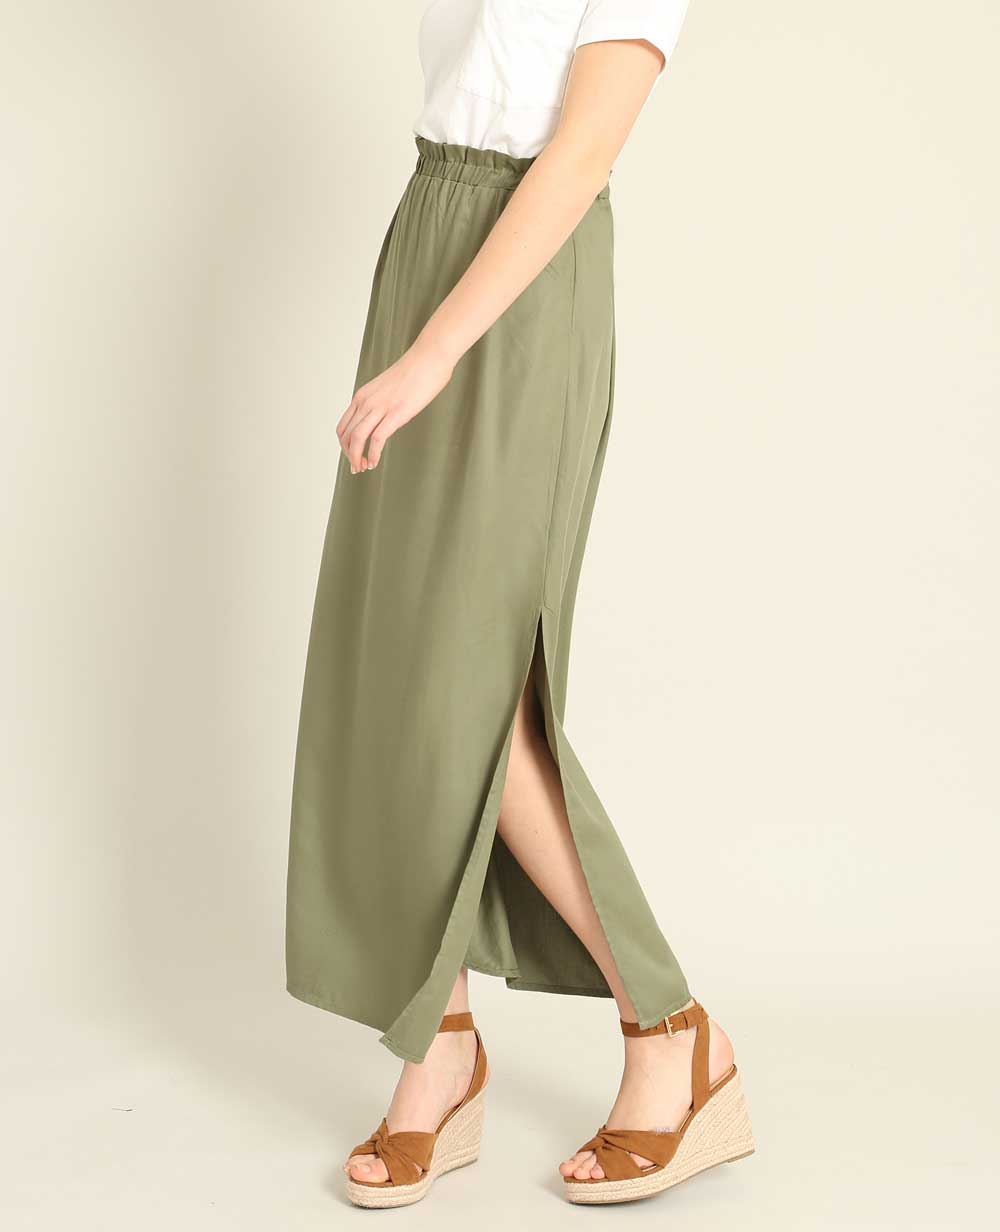 Pimkie long skirts summer 2018